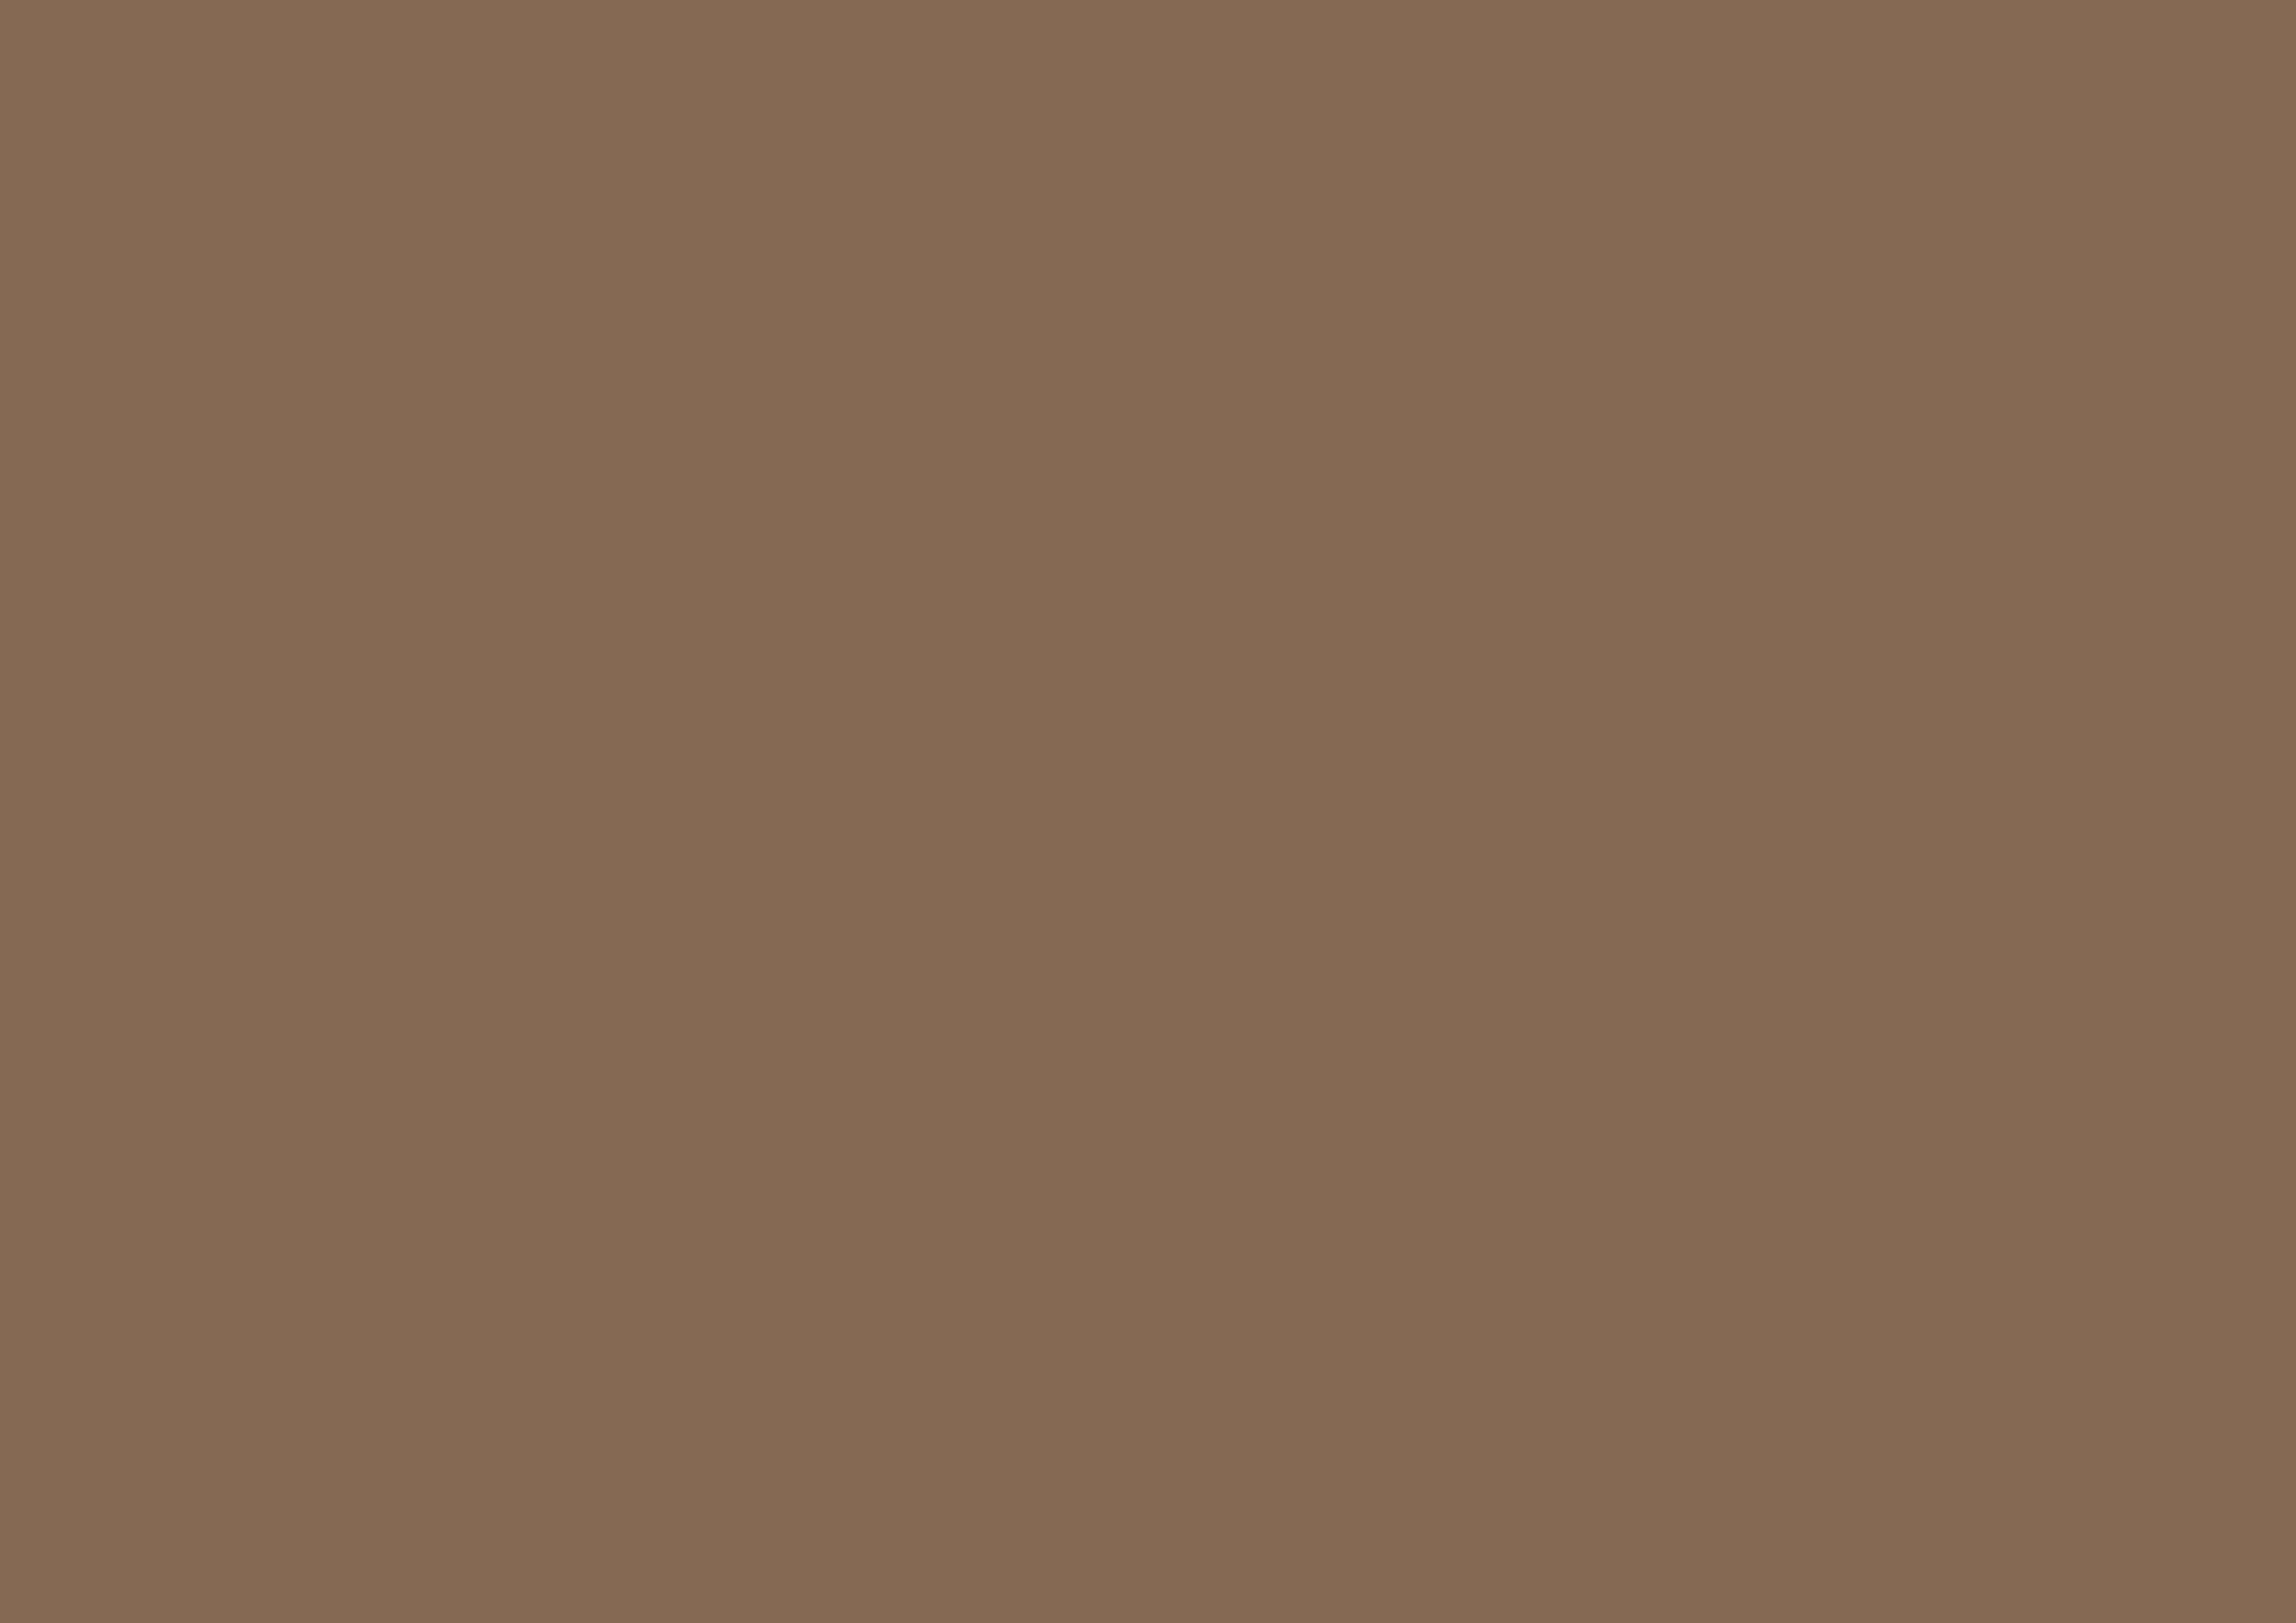 3508x2480 Pastel Brown Solid Color Background